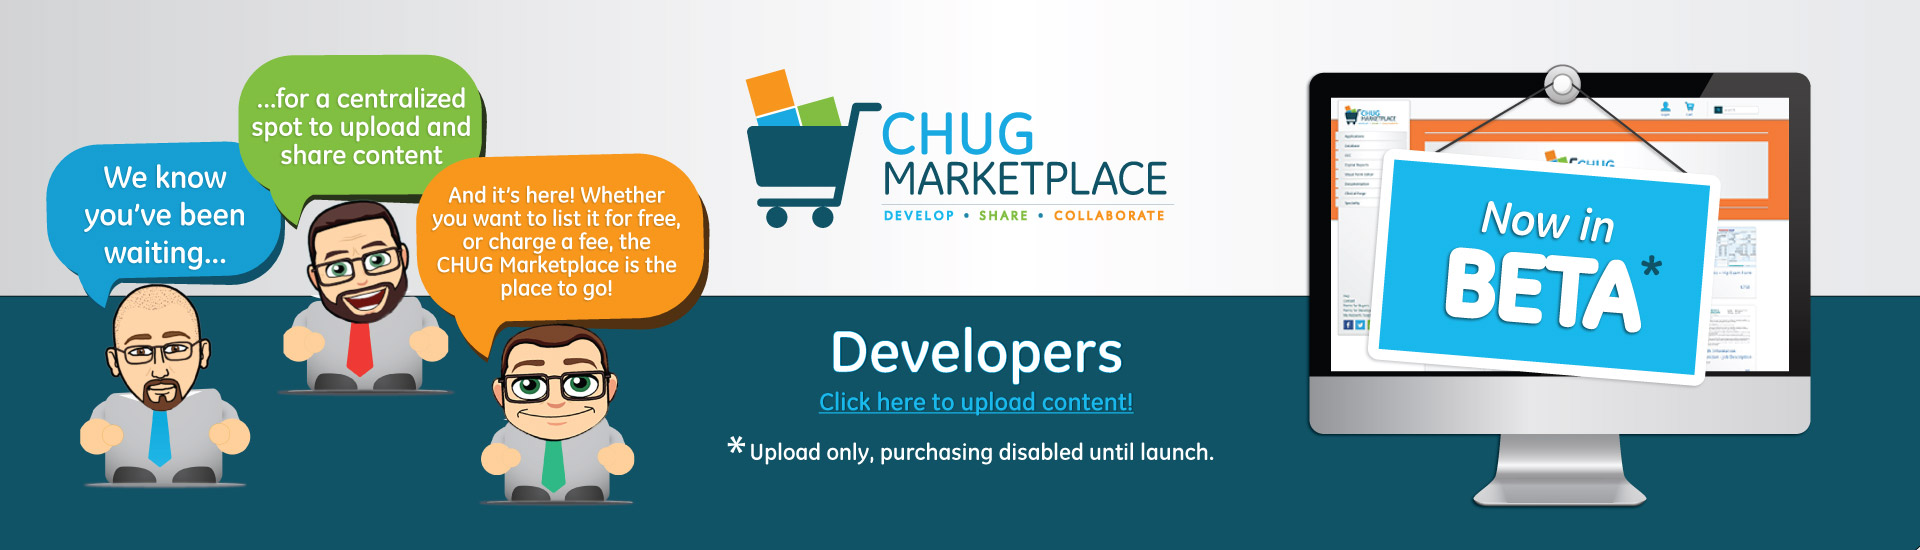 CHUG Marketplace